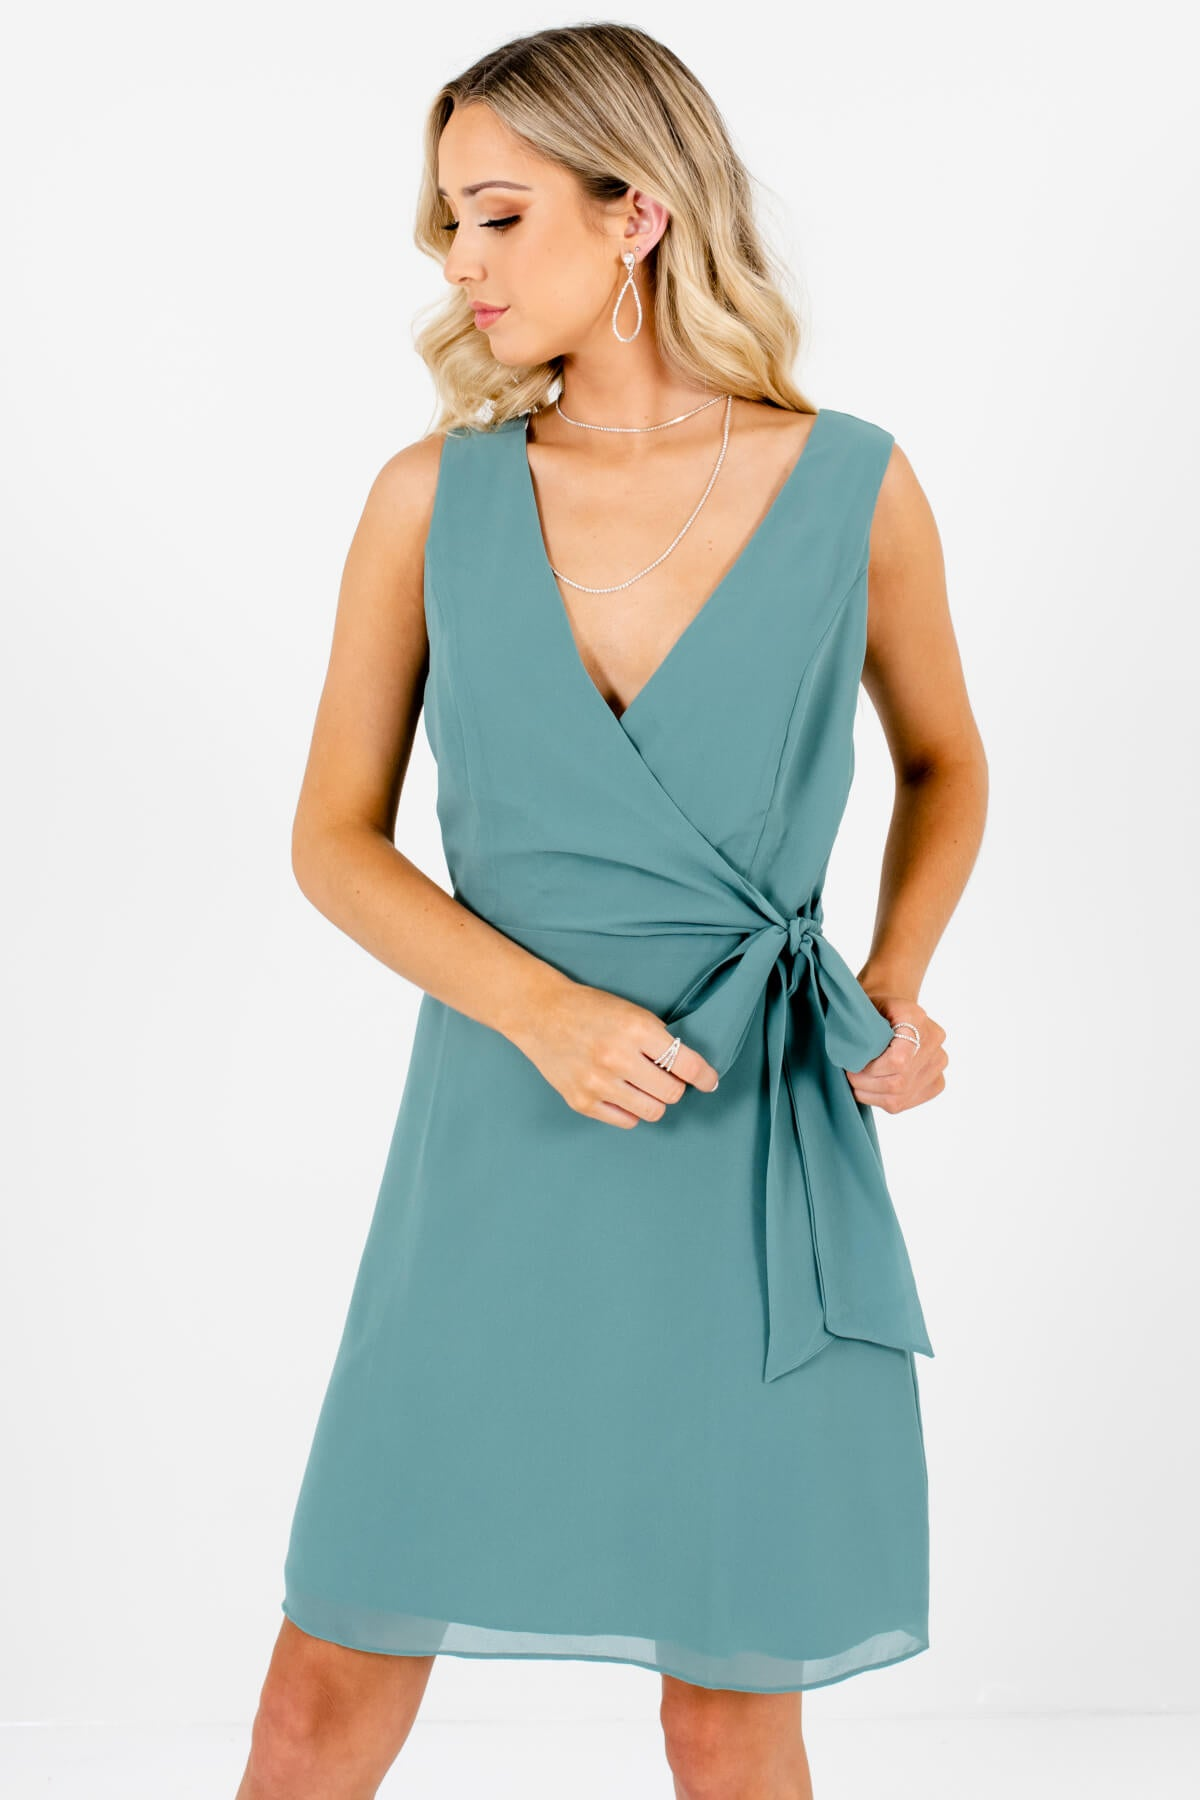 Green Faux Wrap Style Boutique Mini Dresses for Women